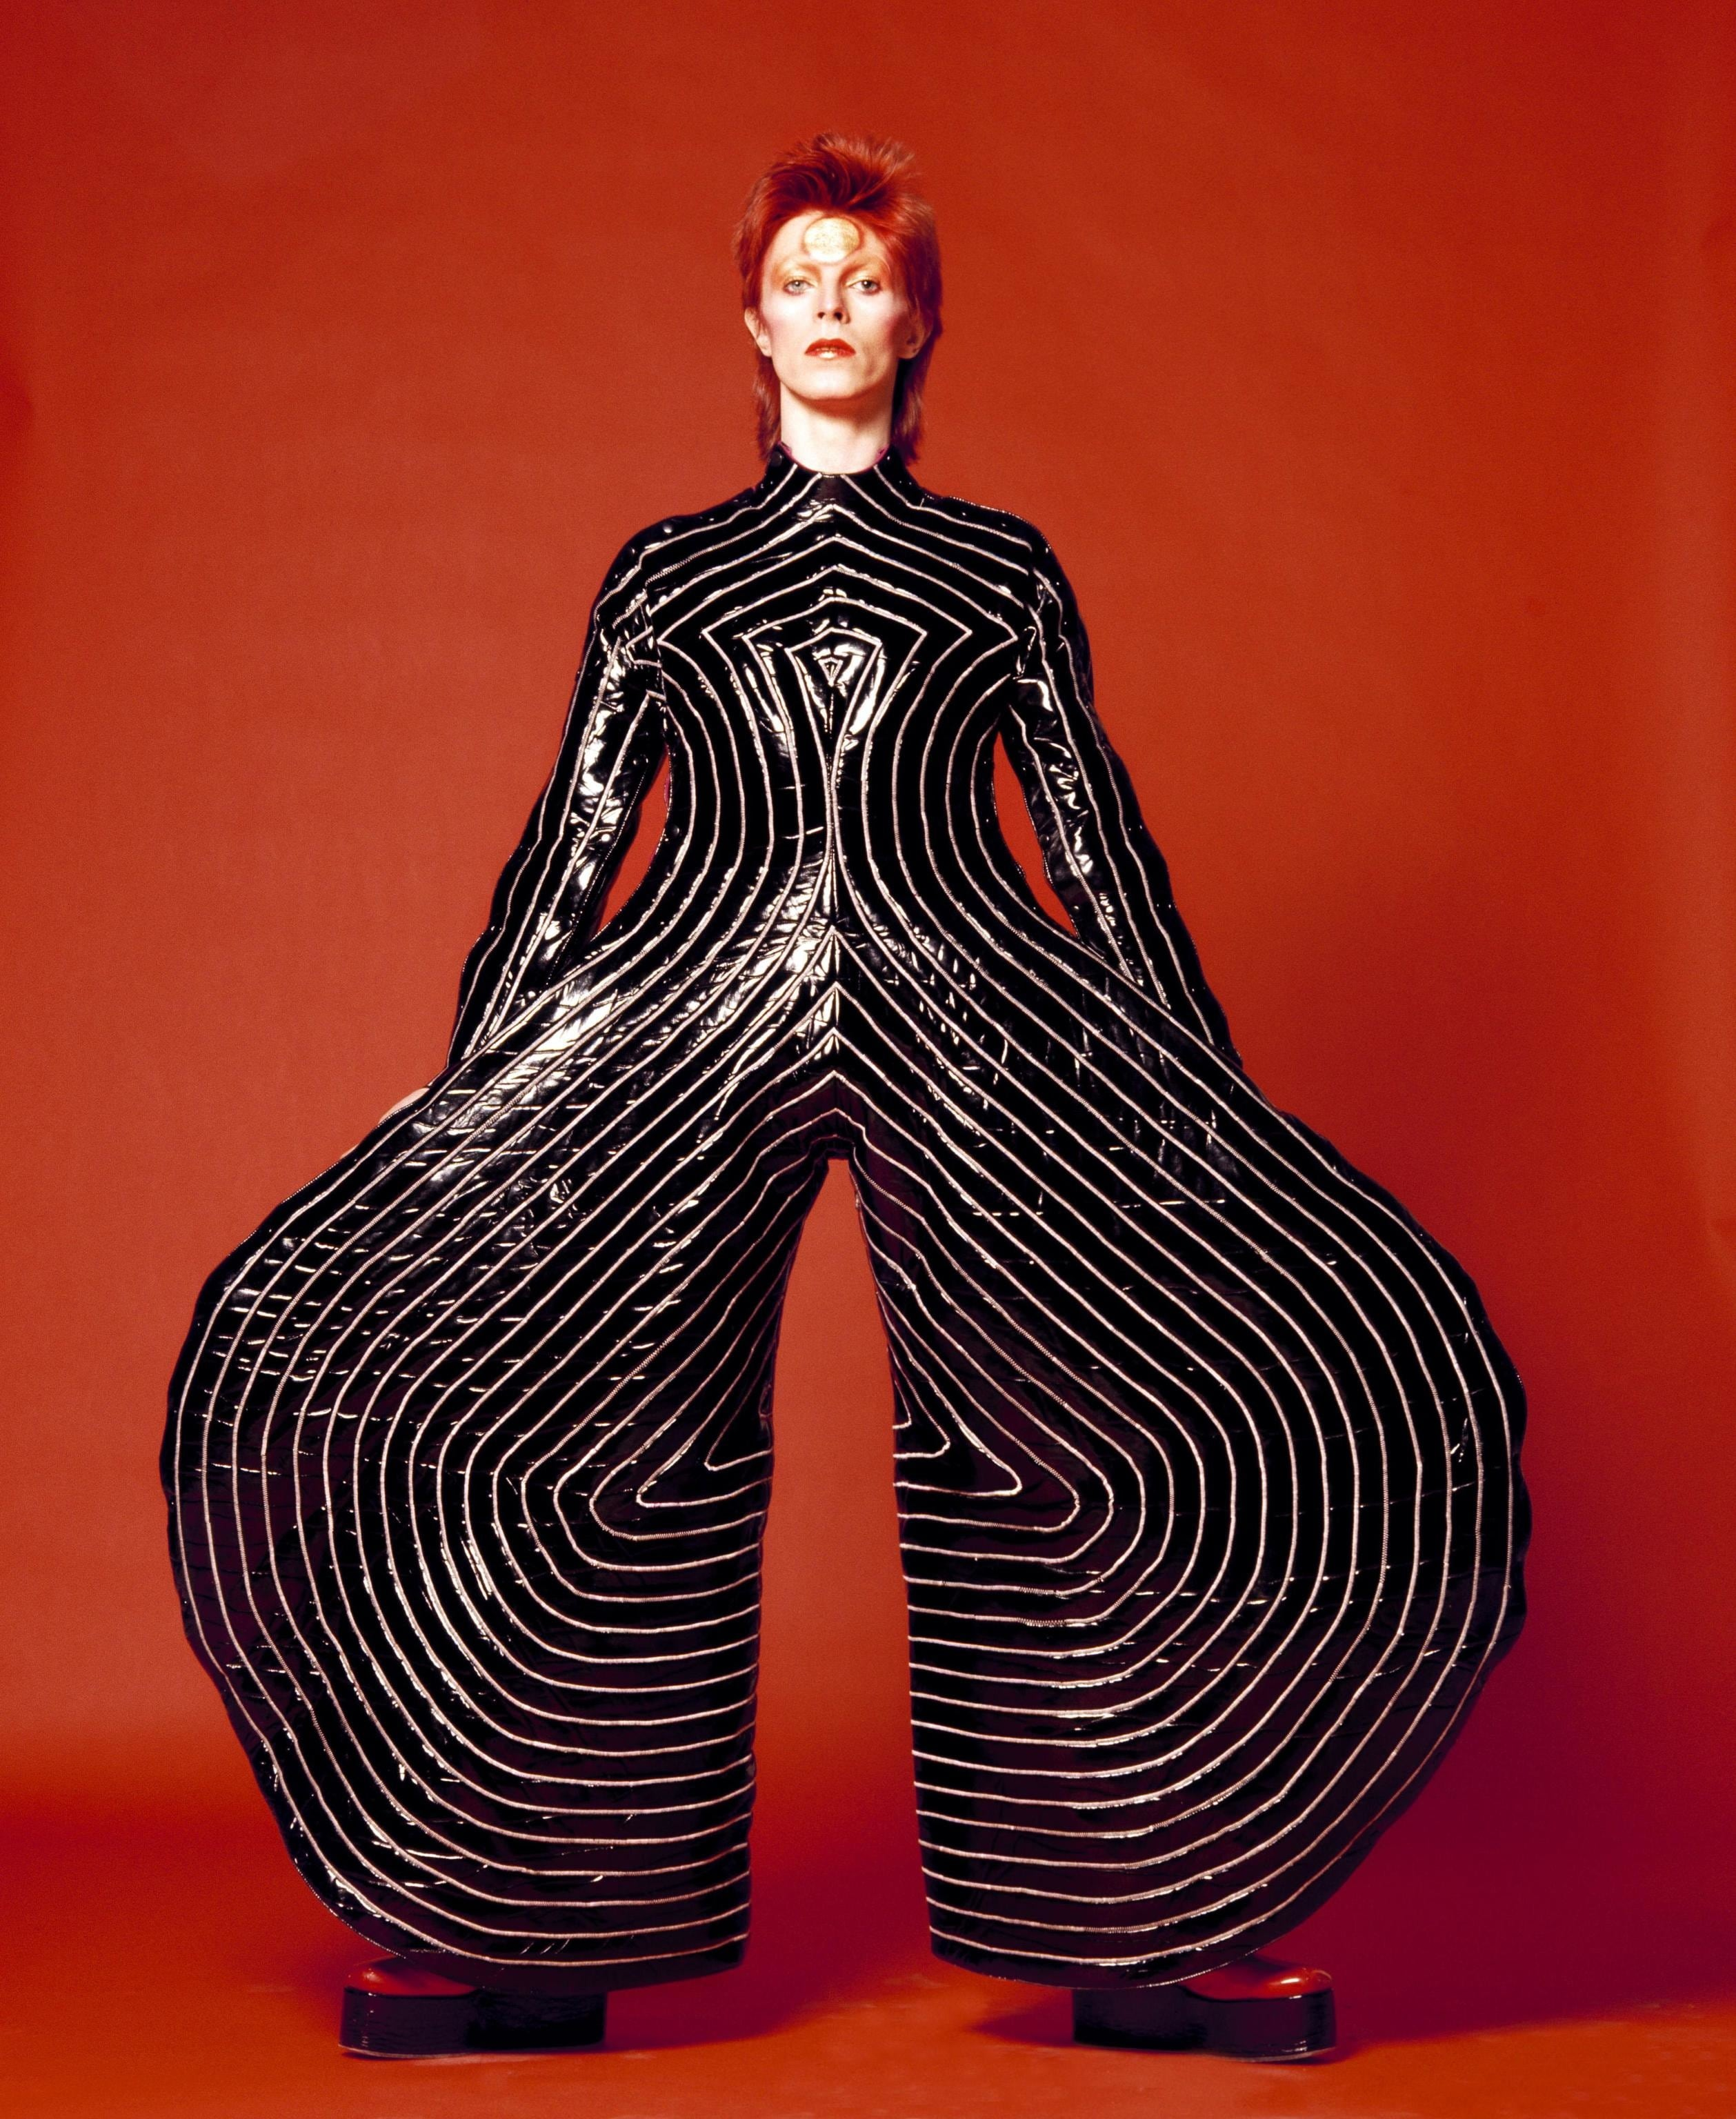 Bowie-rosso